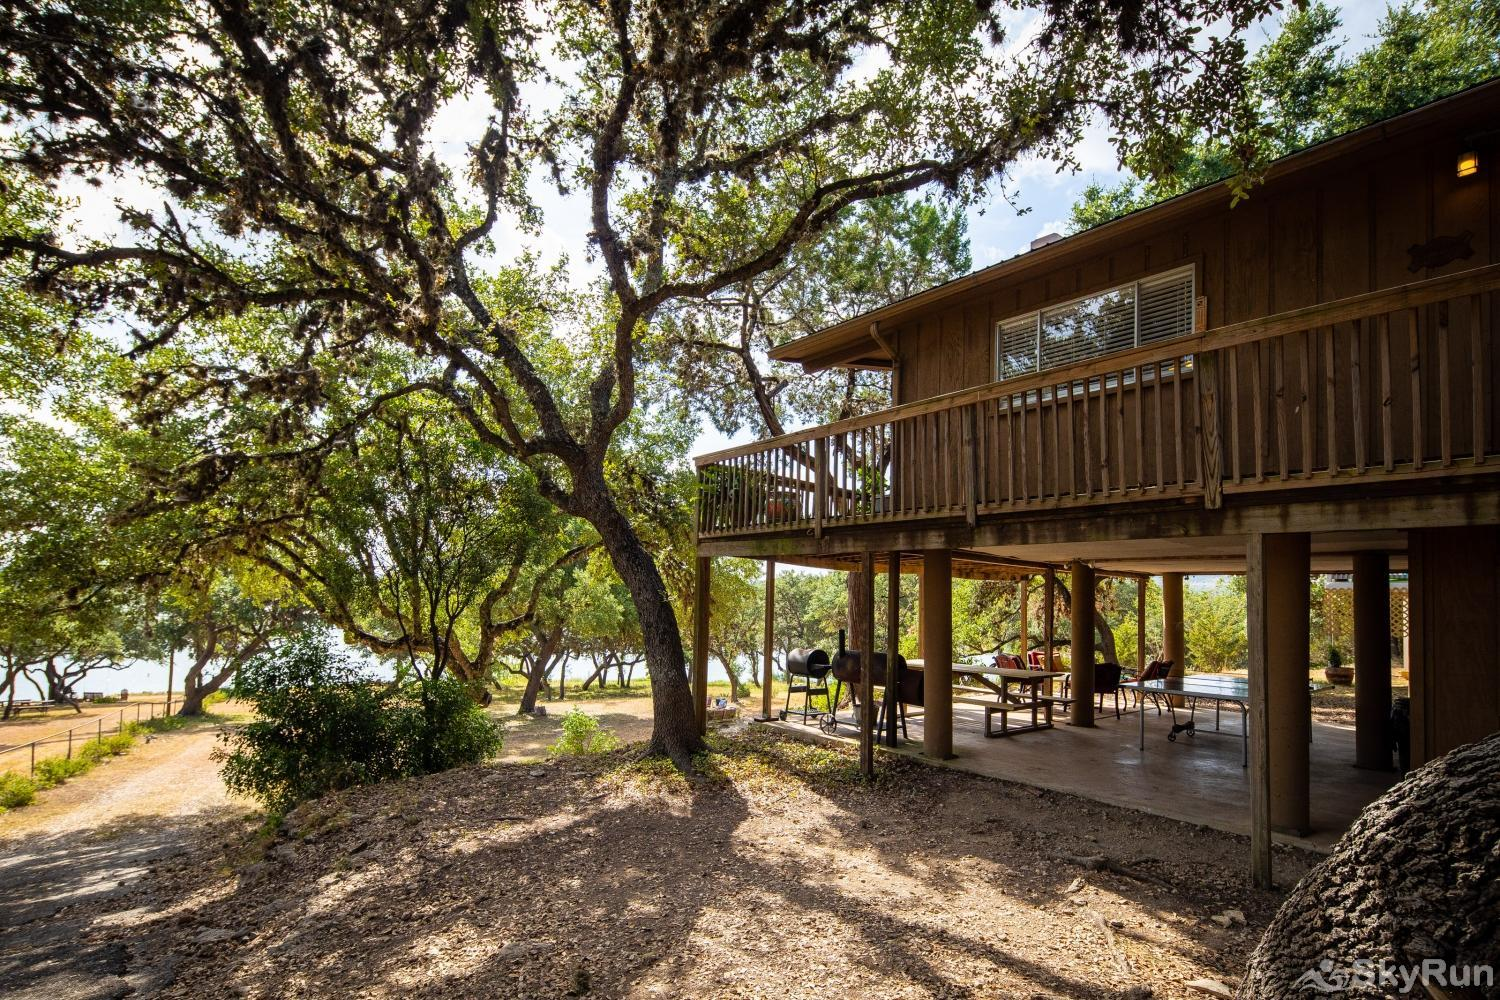 CASA DEL LAGO Property shaded by large oak trees